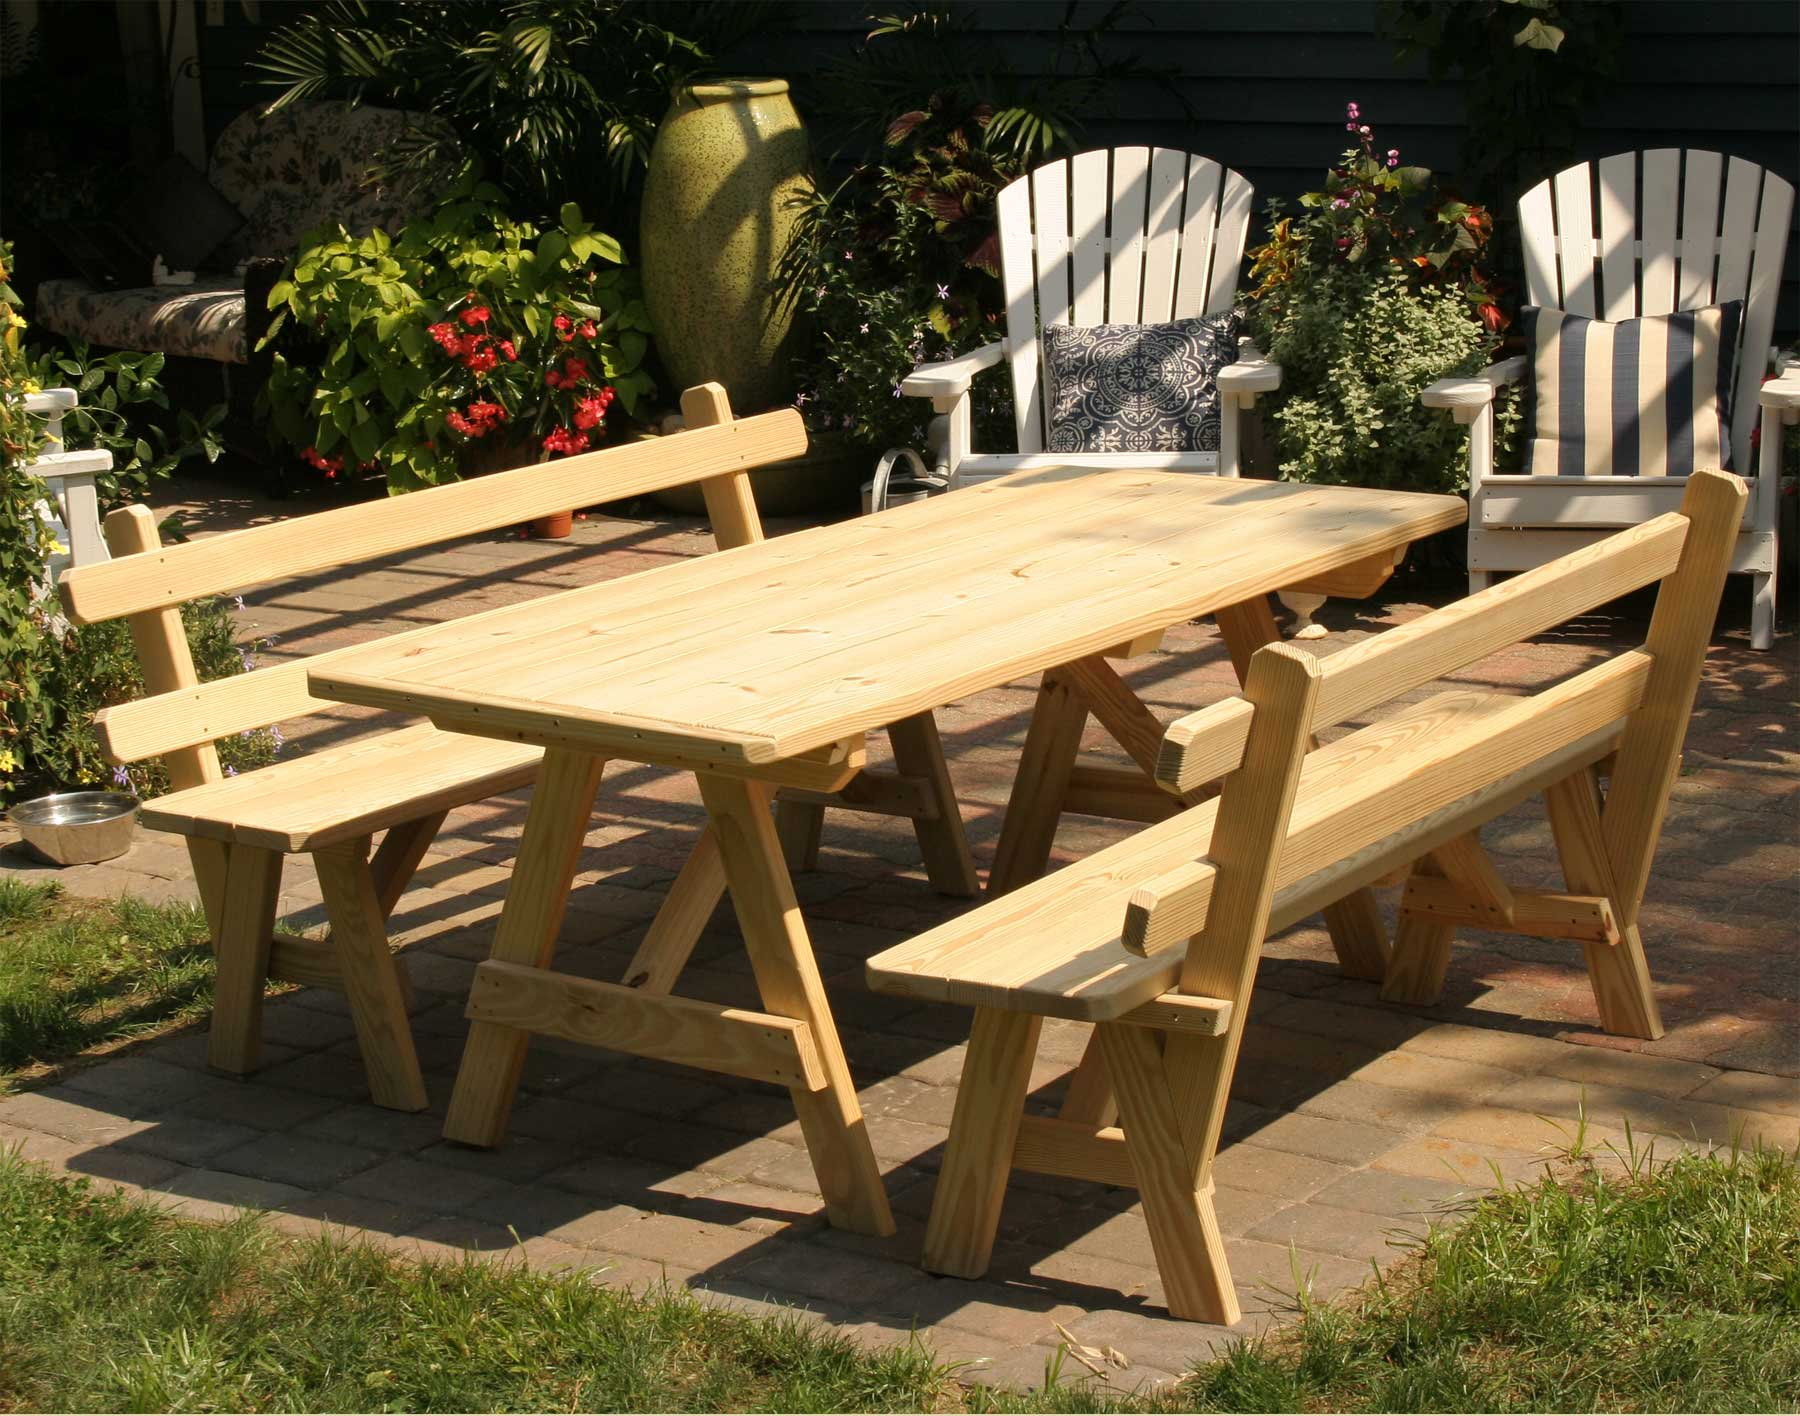 Picnic Table Plans With Separate Benches, Dec... - Amazing Wood Plans ...